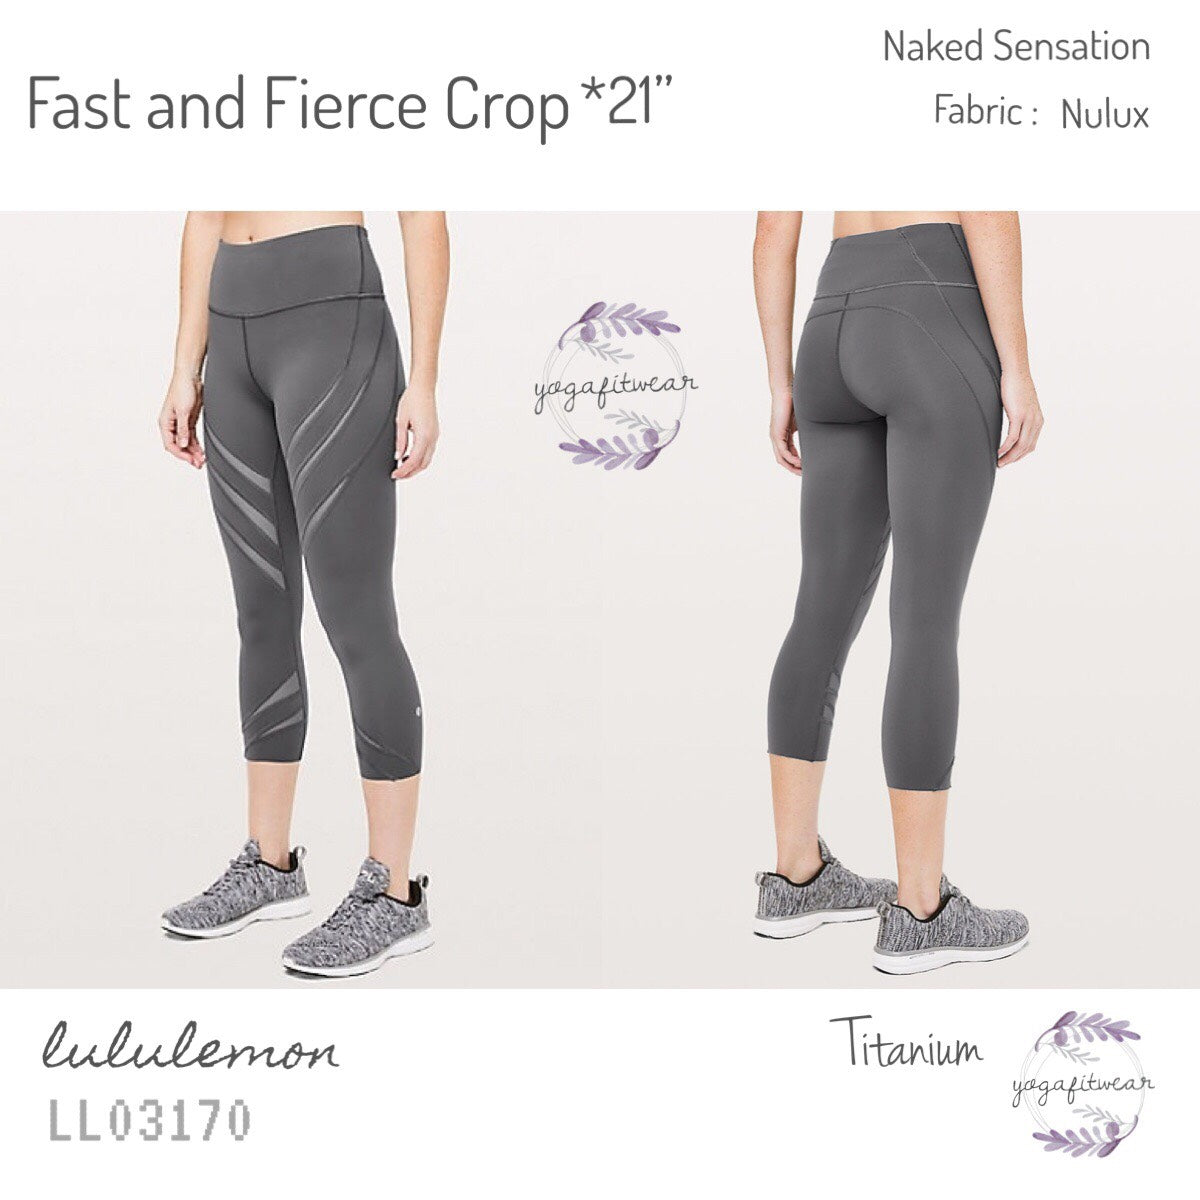 "Lululemon - Fast and Fierce Crop * 21"" (Titanium) (LL03170)"